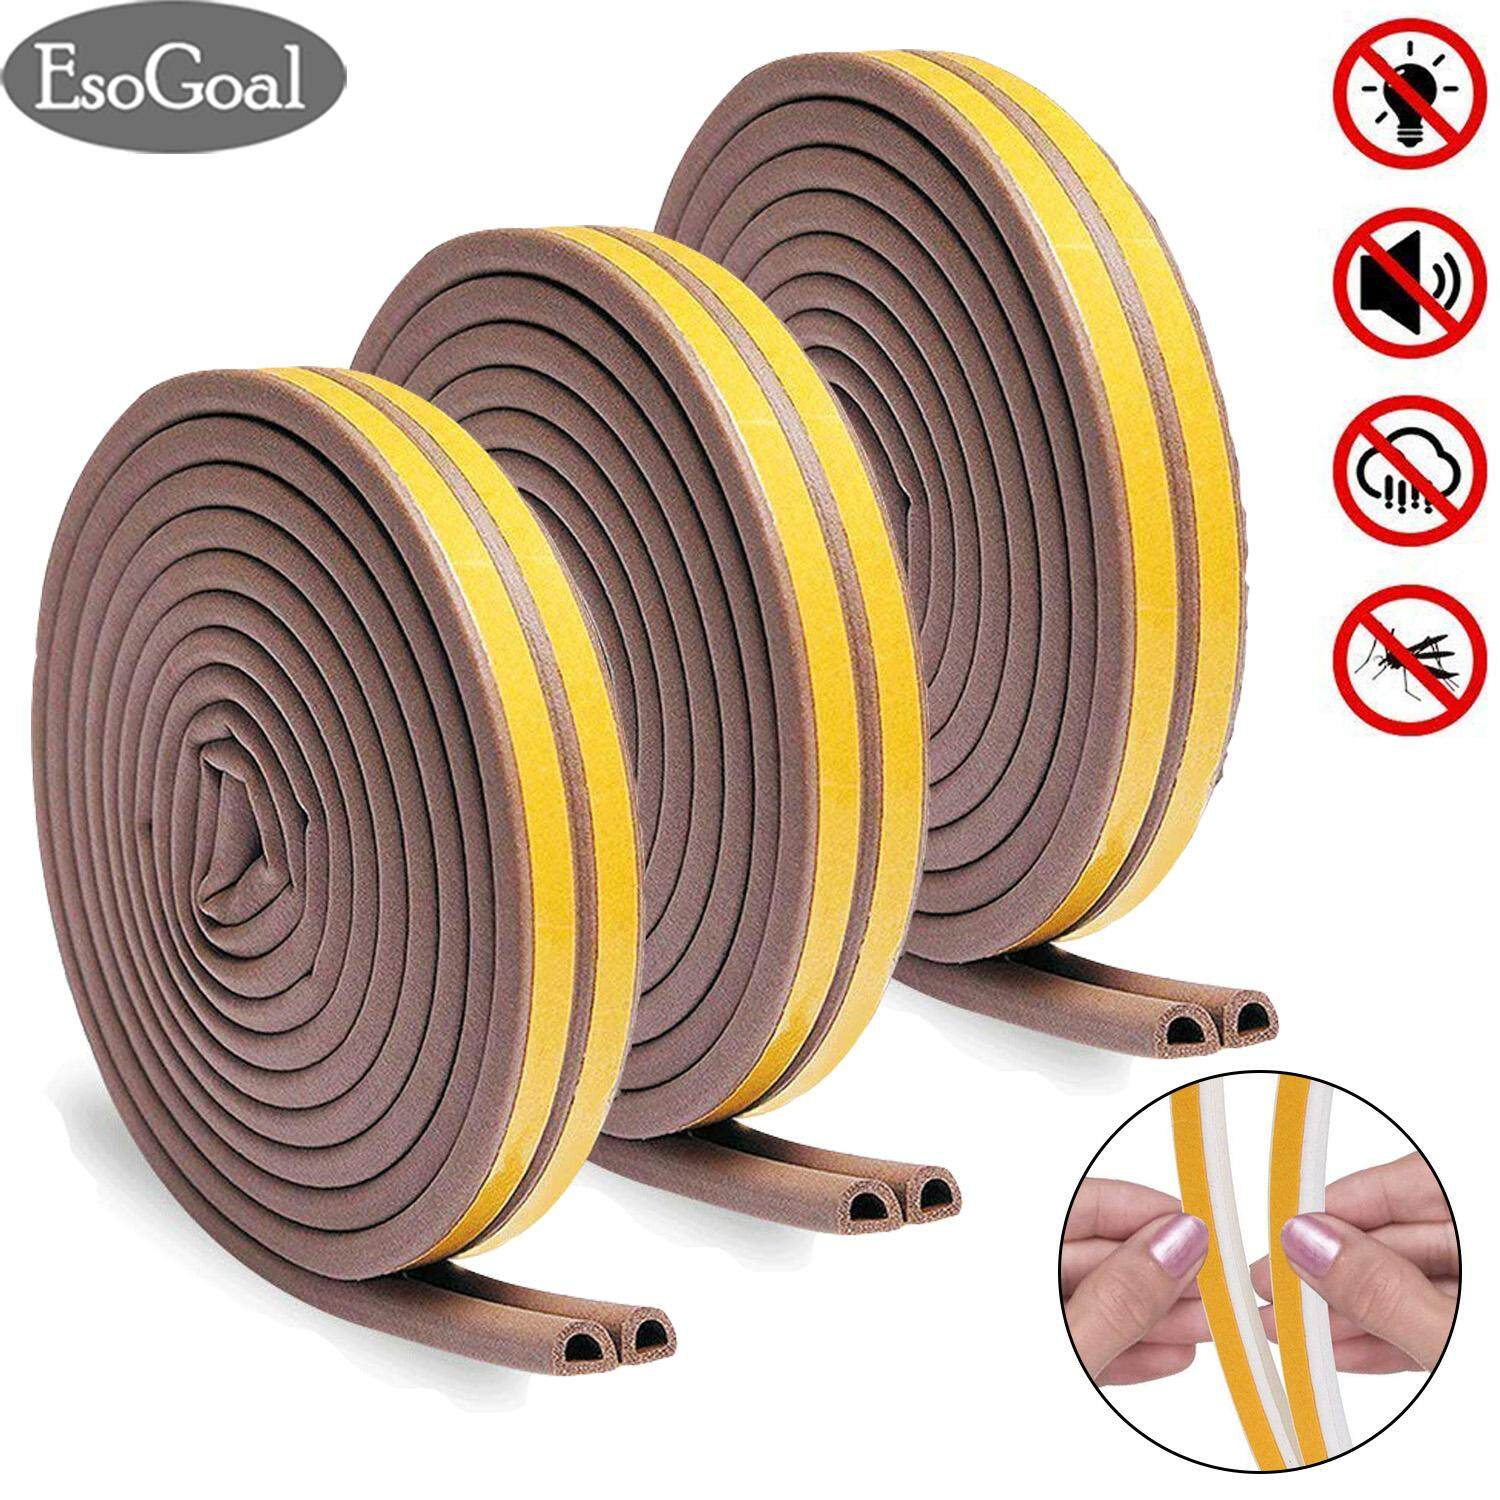 Esogoal Soundproof Self-Adhesive Seal Strip Frame Side Draft Stopper Waterproof Anti-Collision Weatherstrip Gap Blocker Indoor Weather Stripping Rubber For Doors Windows By Esogoal.